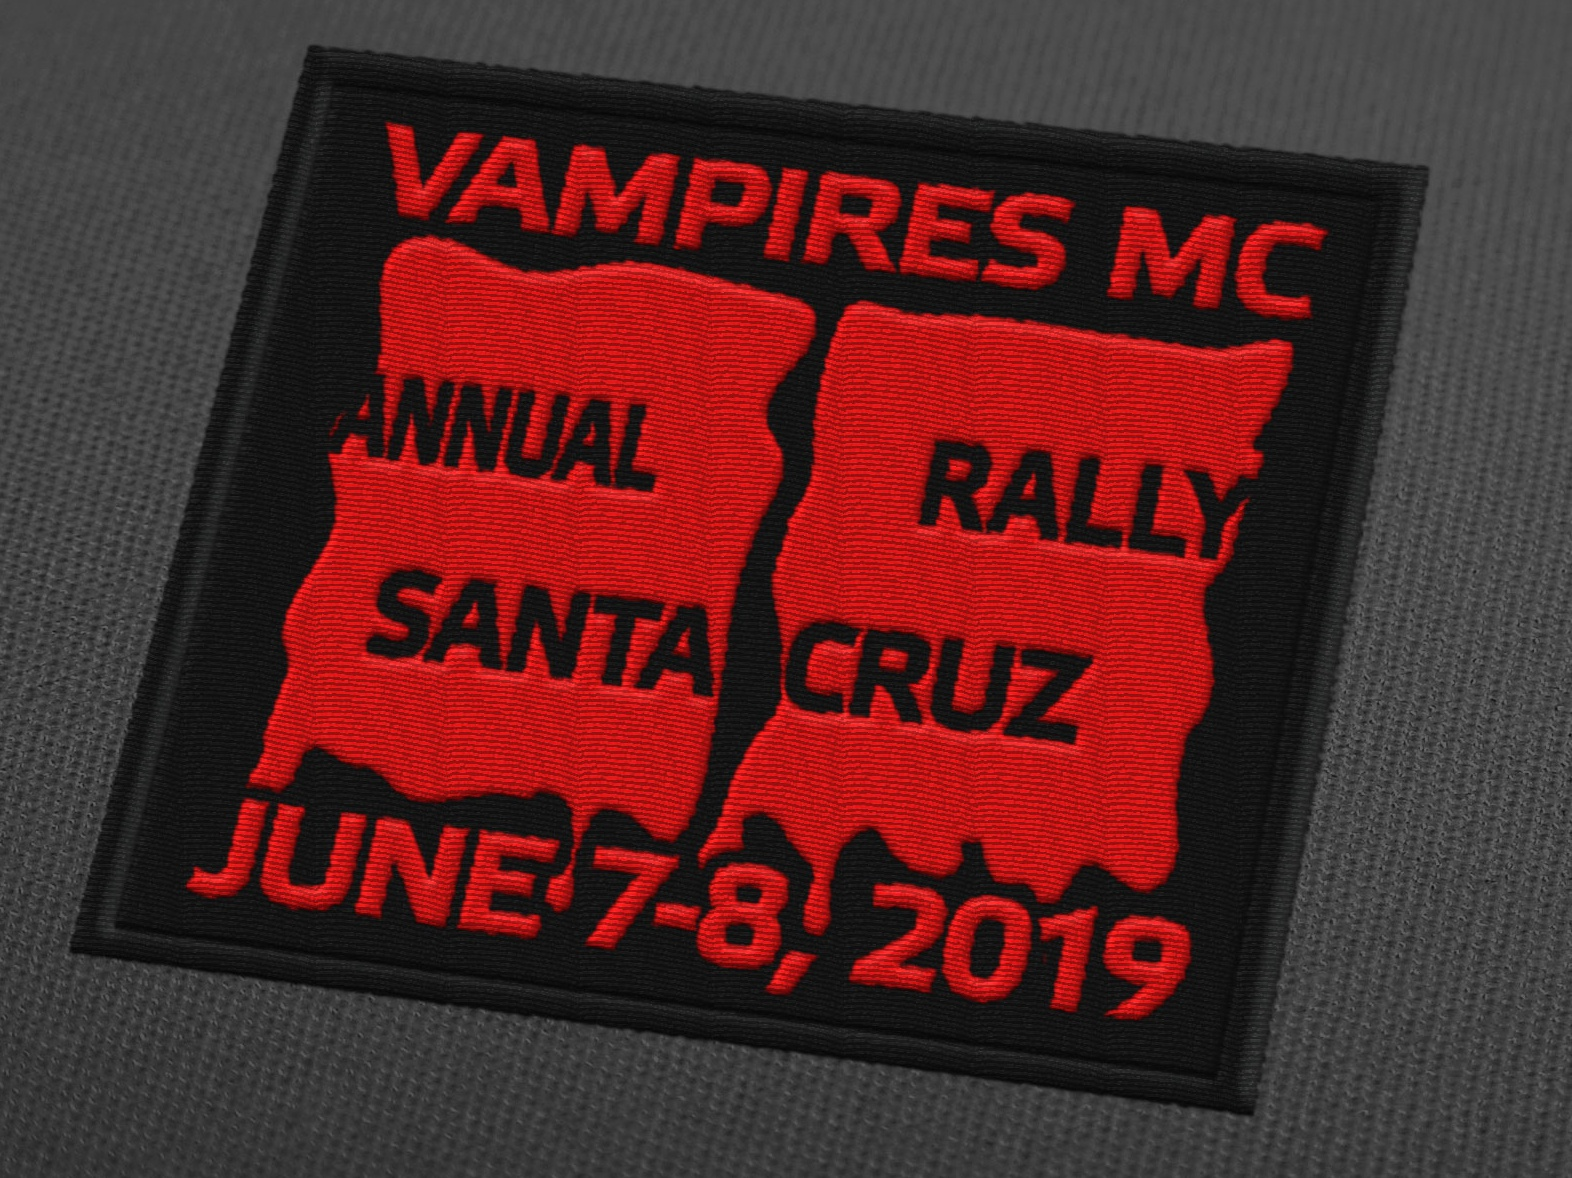 Vampires MC 25th Anniversary Patch motocycle negative space embroidered patch embroidery patch